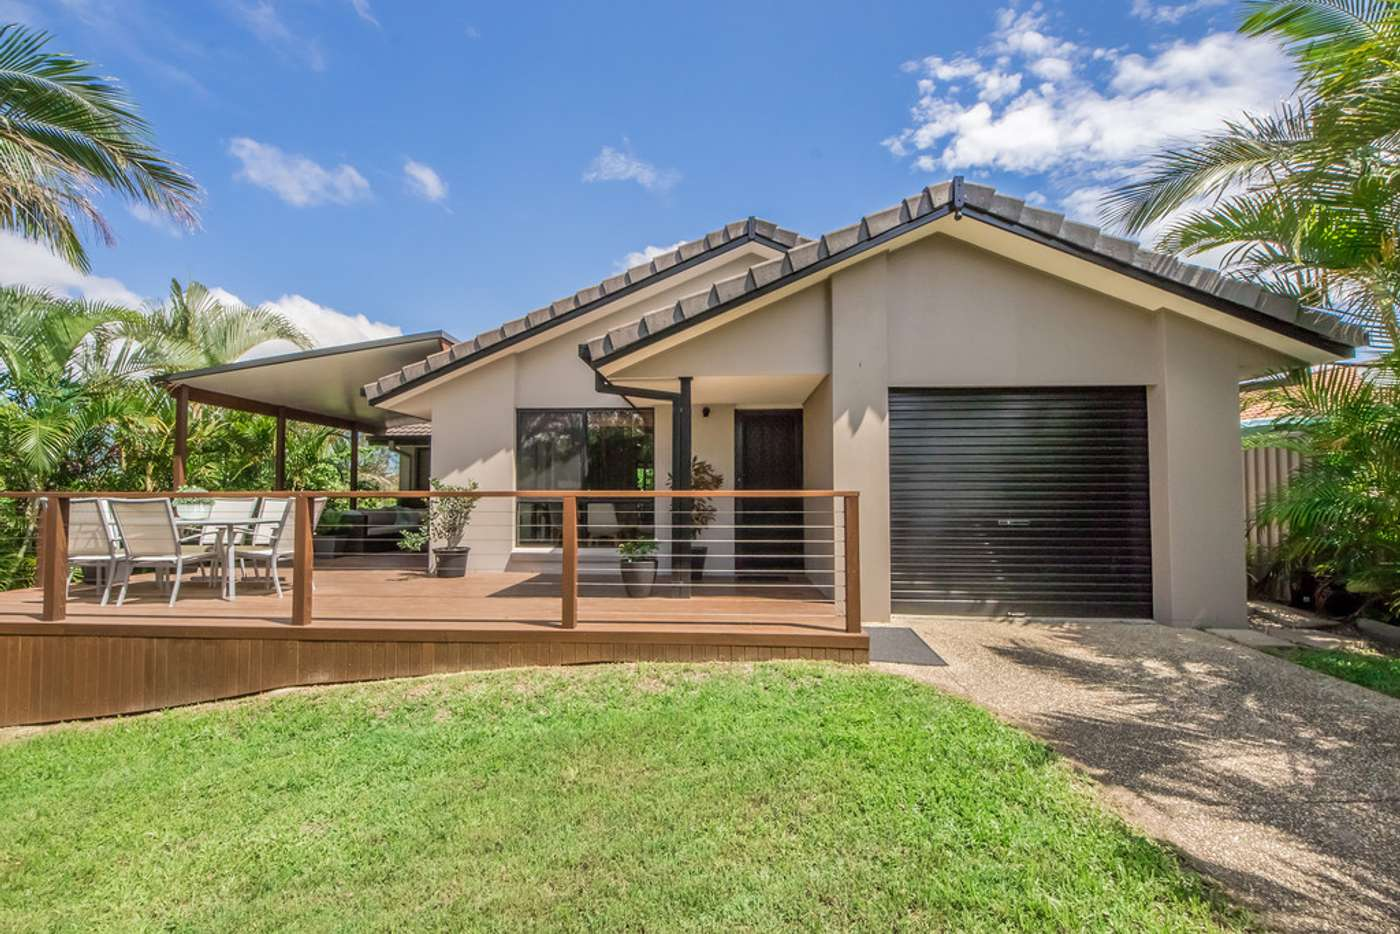 Main view of Homely house listing, 31 Willunga Place, Merrimac QLD 4226